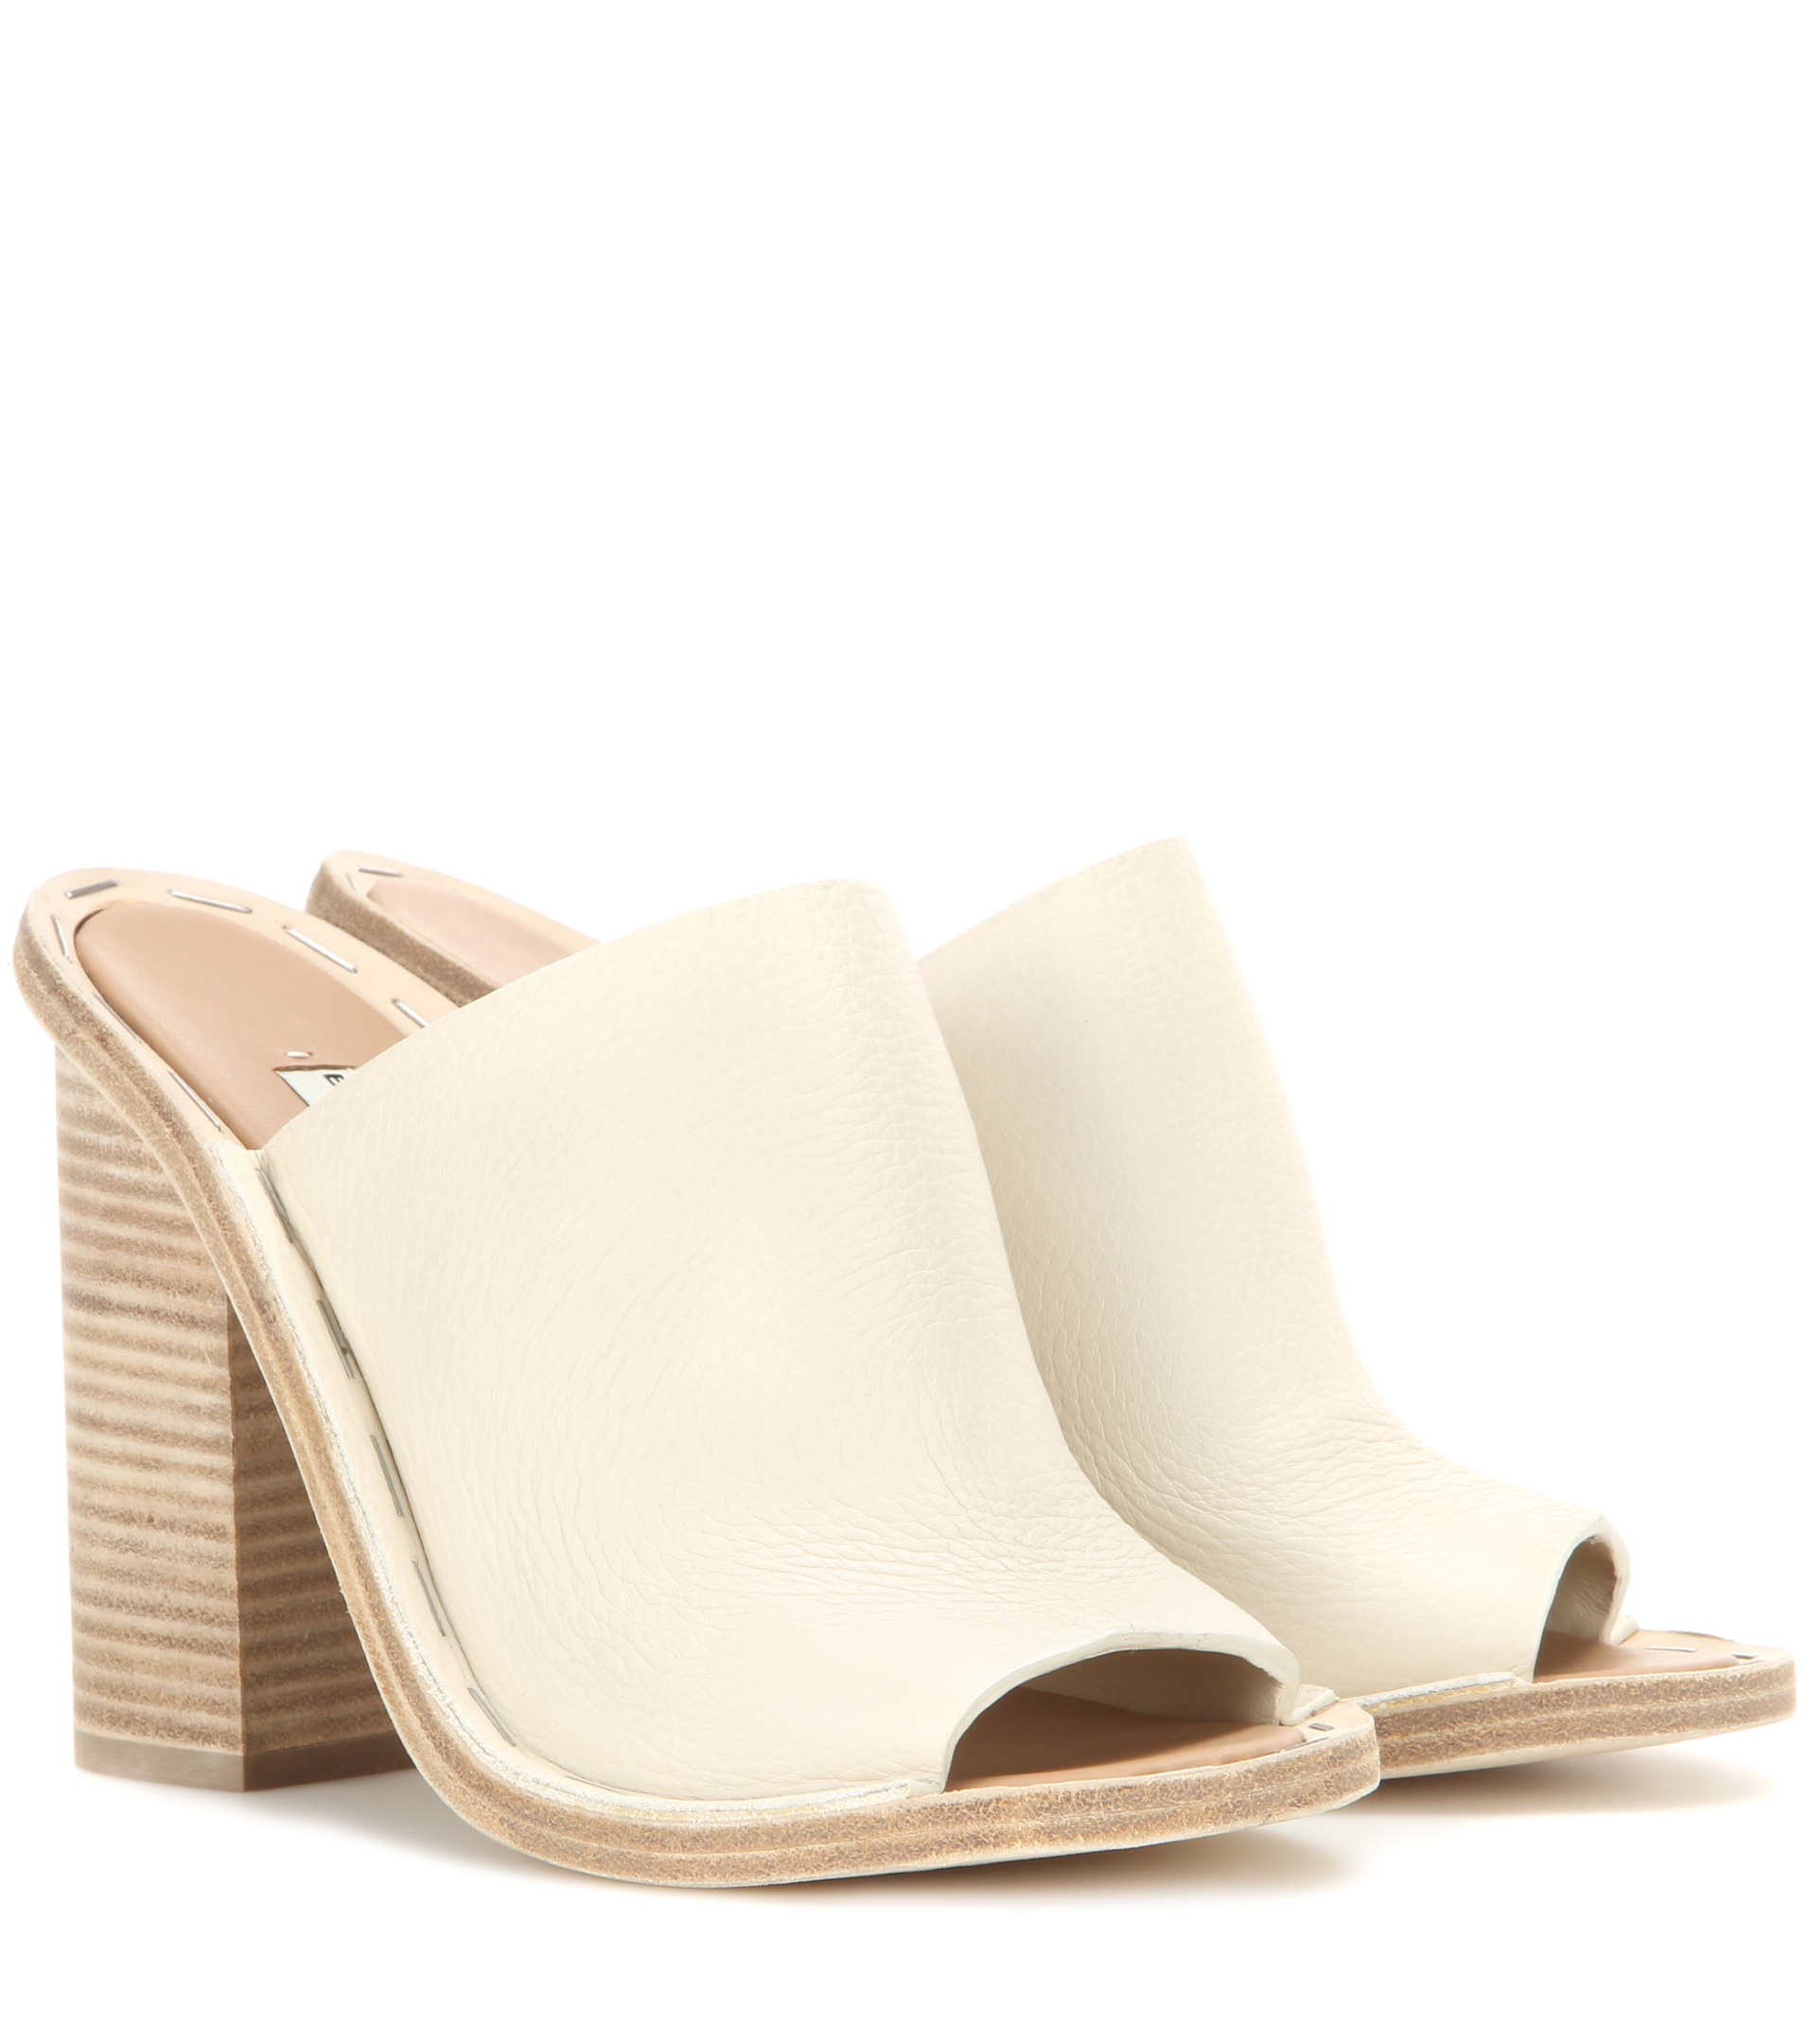 Balenciaga Leather Mules In Natural Lyst